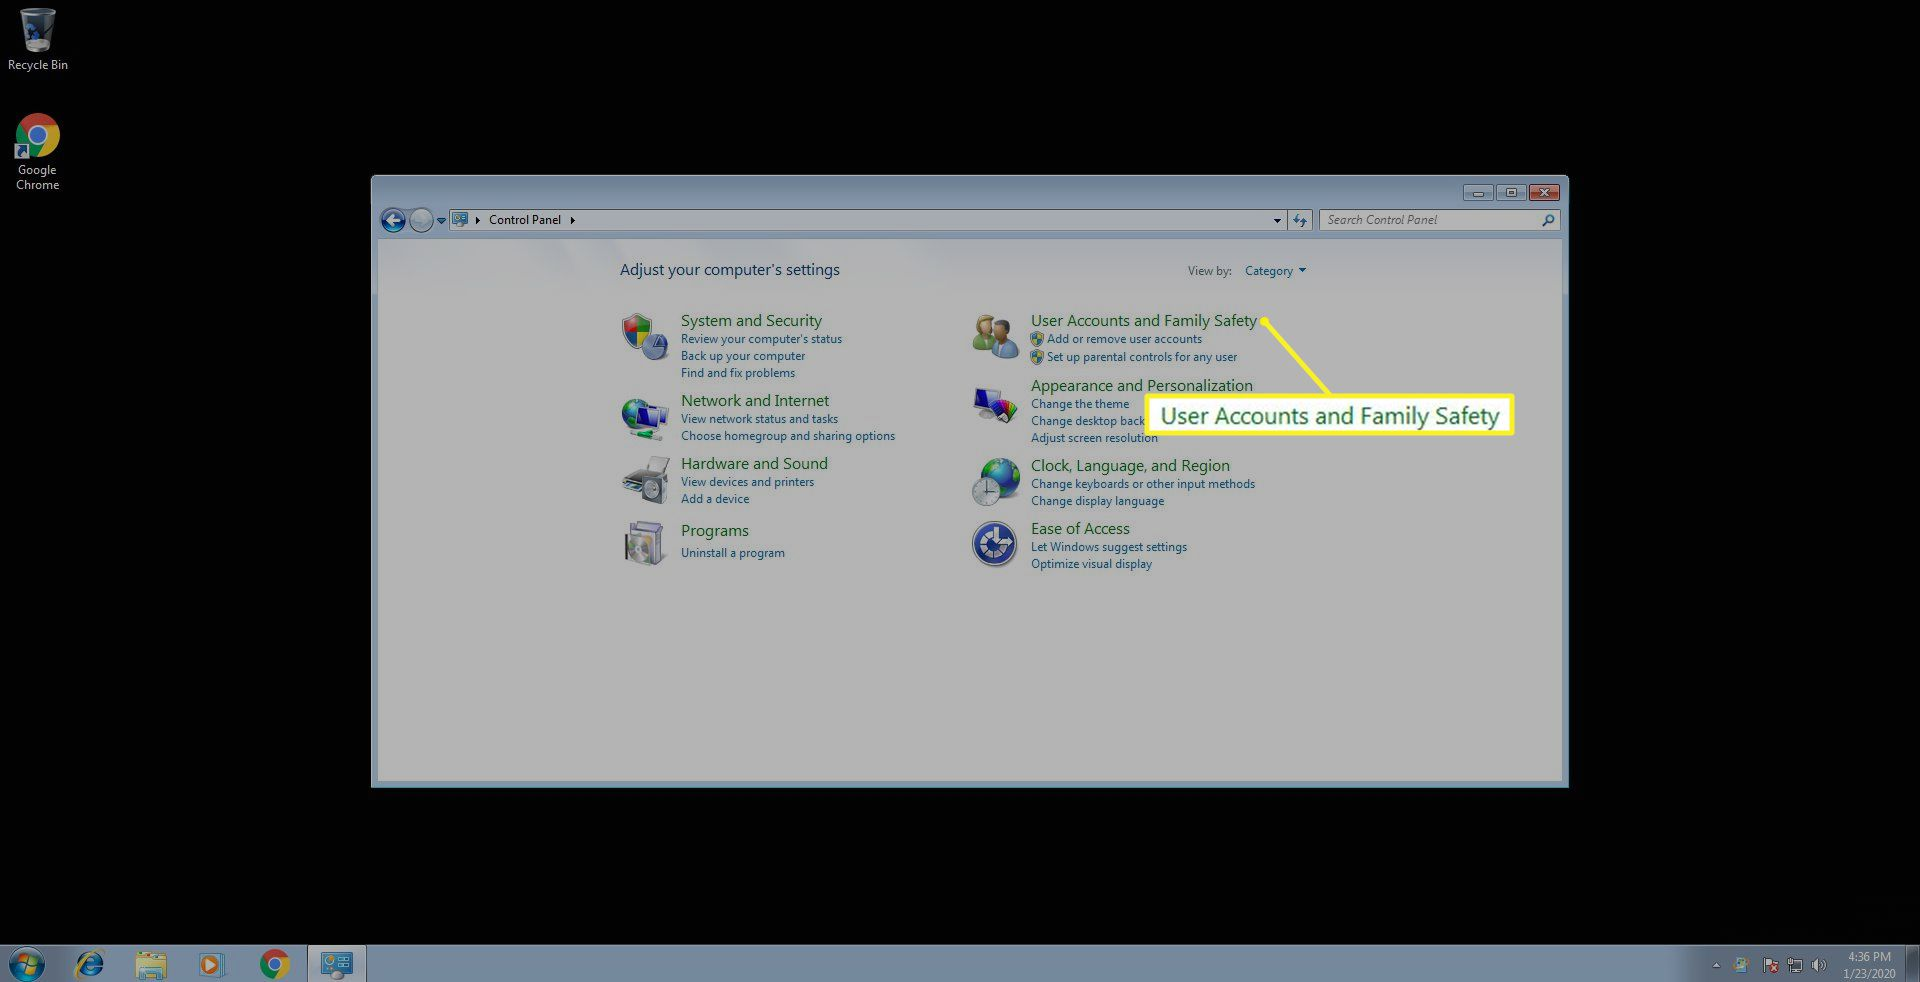 User Accounts and Family Safety in Windows 7